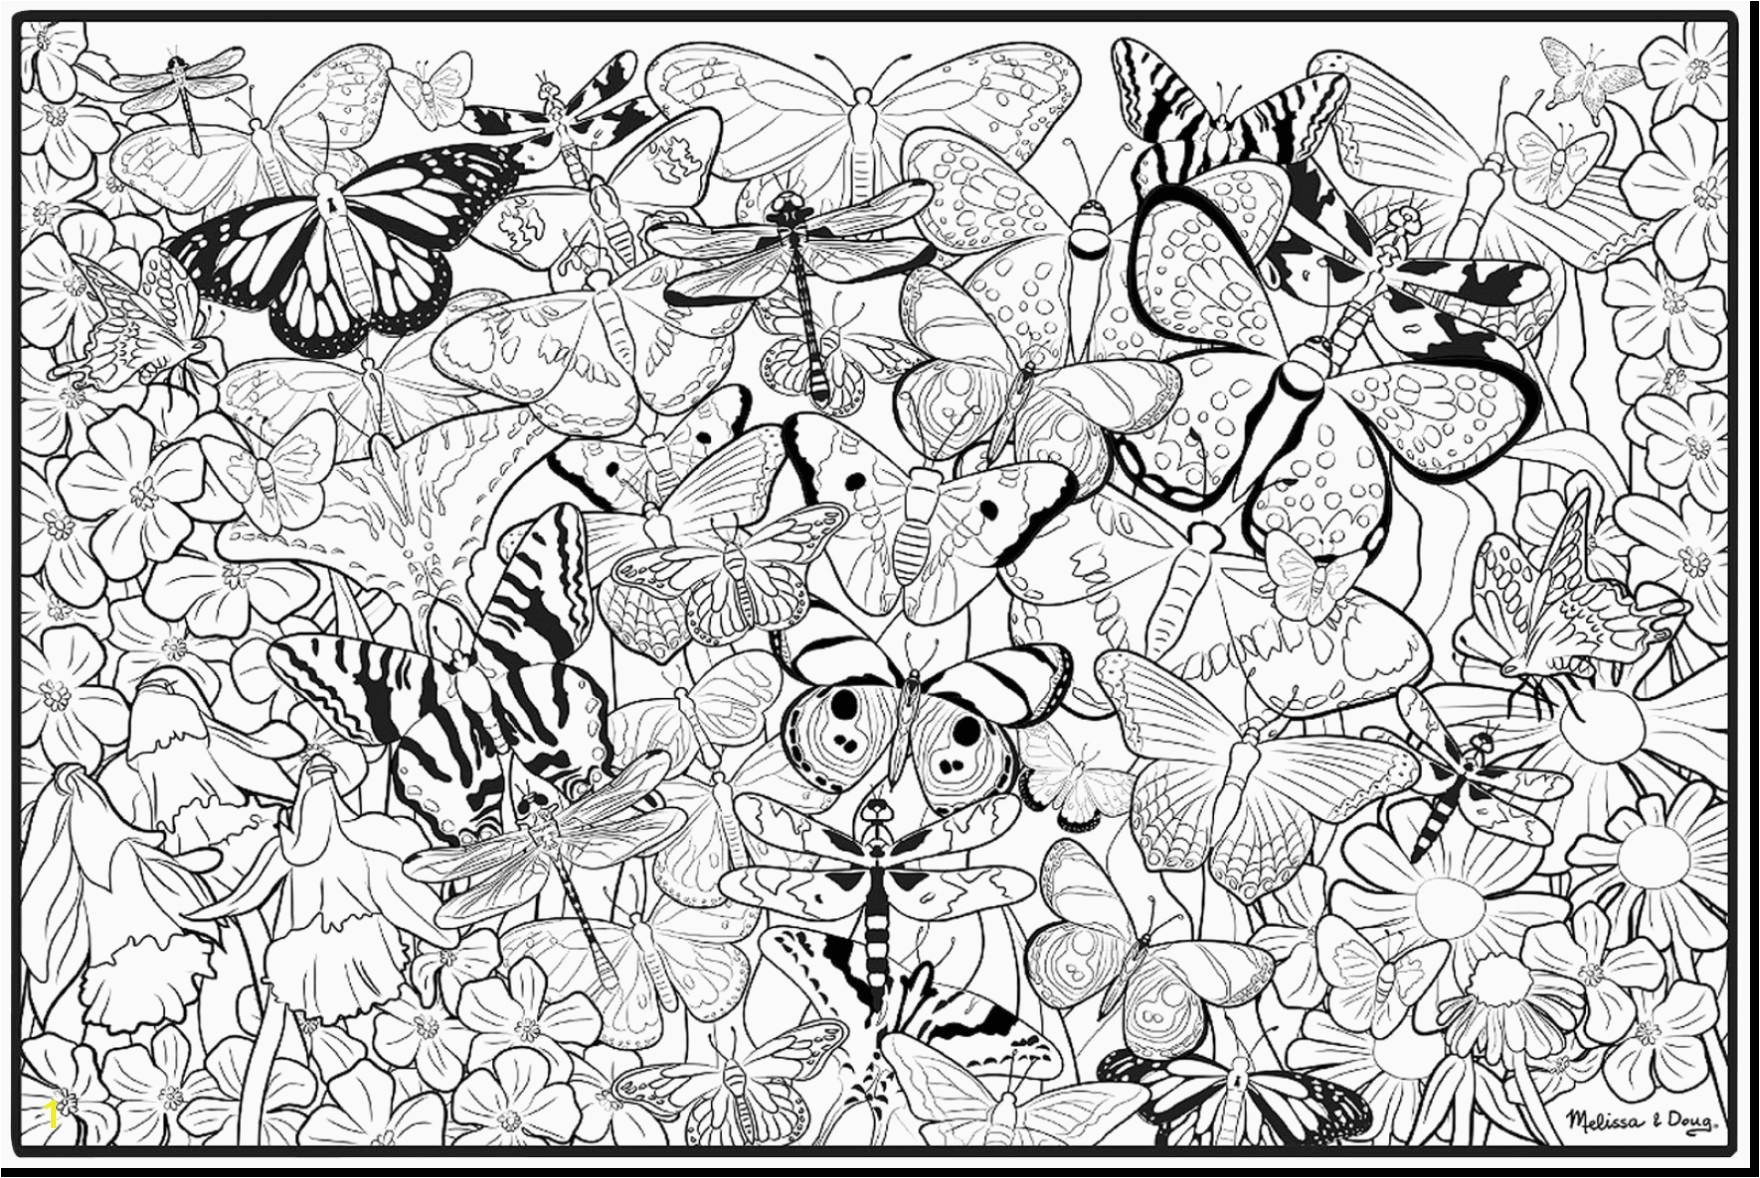 Advanced Coloring Pages for Adults Luxury Free Printable Coloring Pages for Adults Advanced Fresh New Od